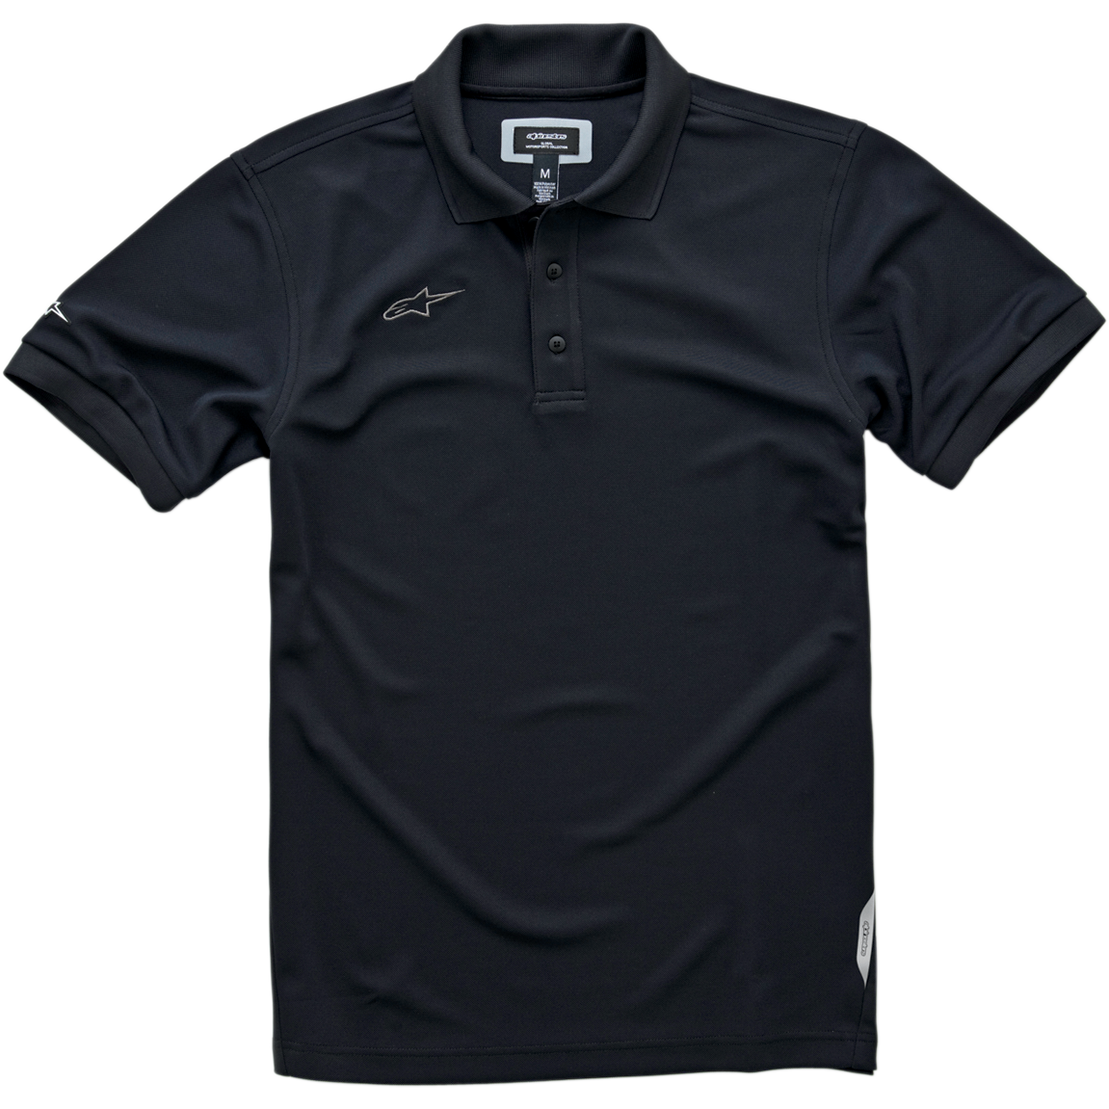 Vortex Polo Shirt